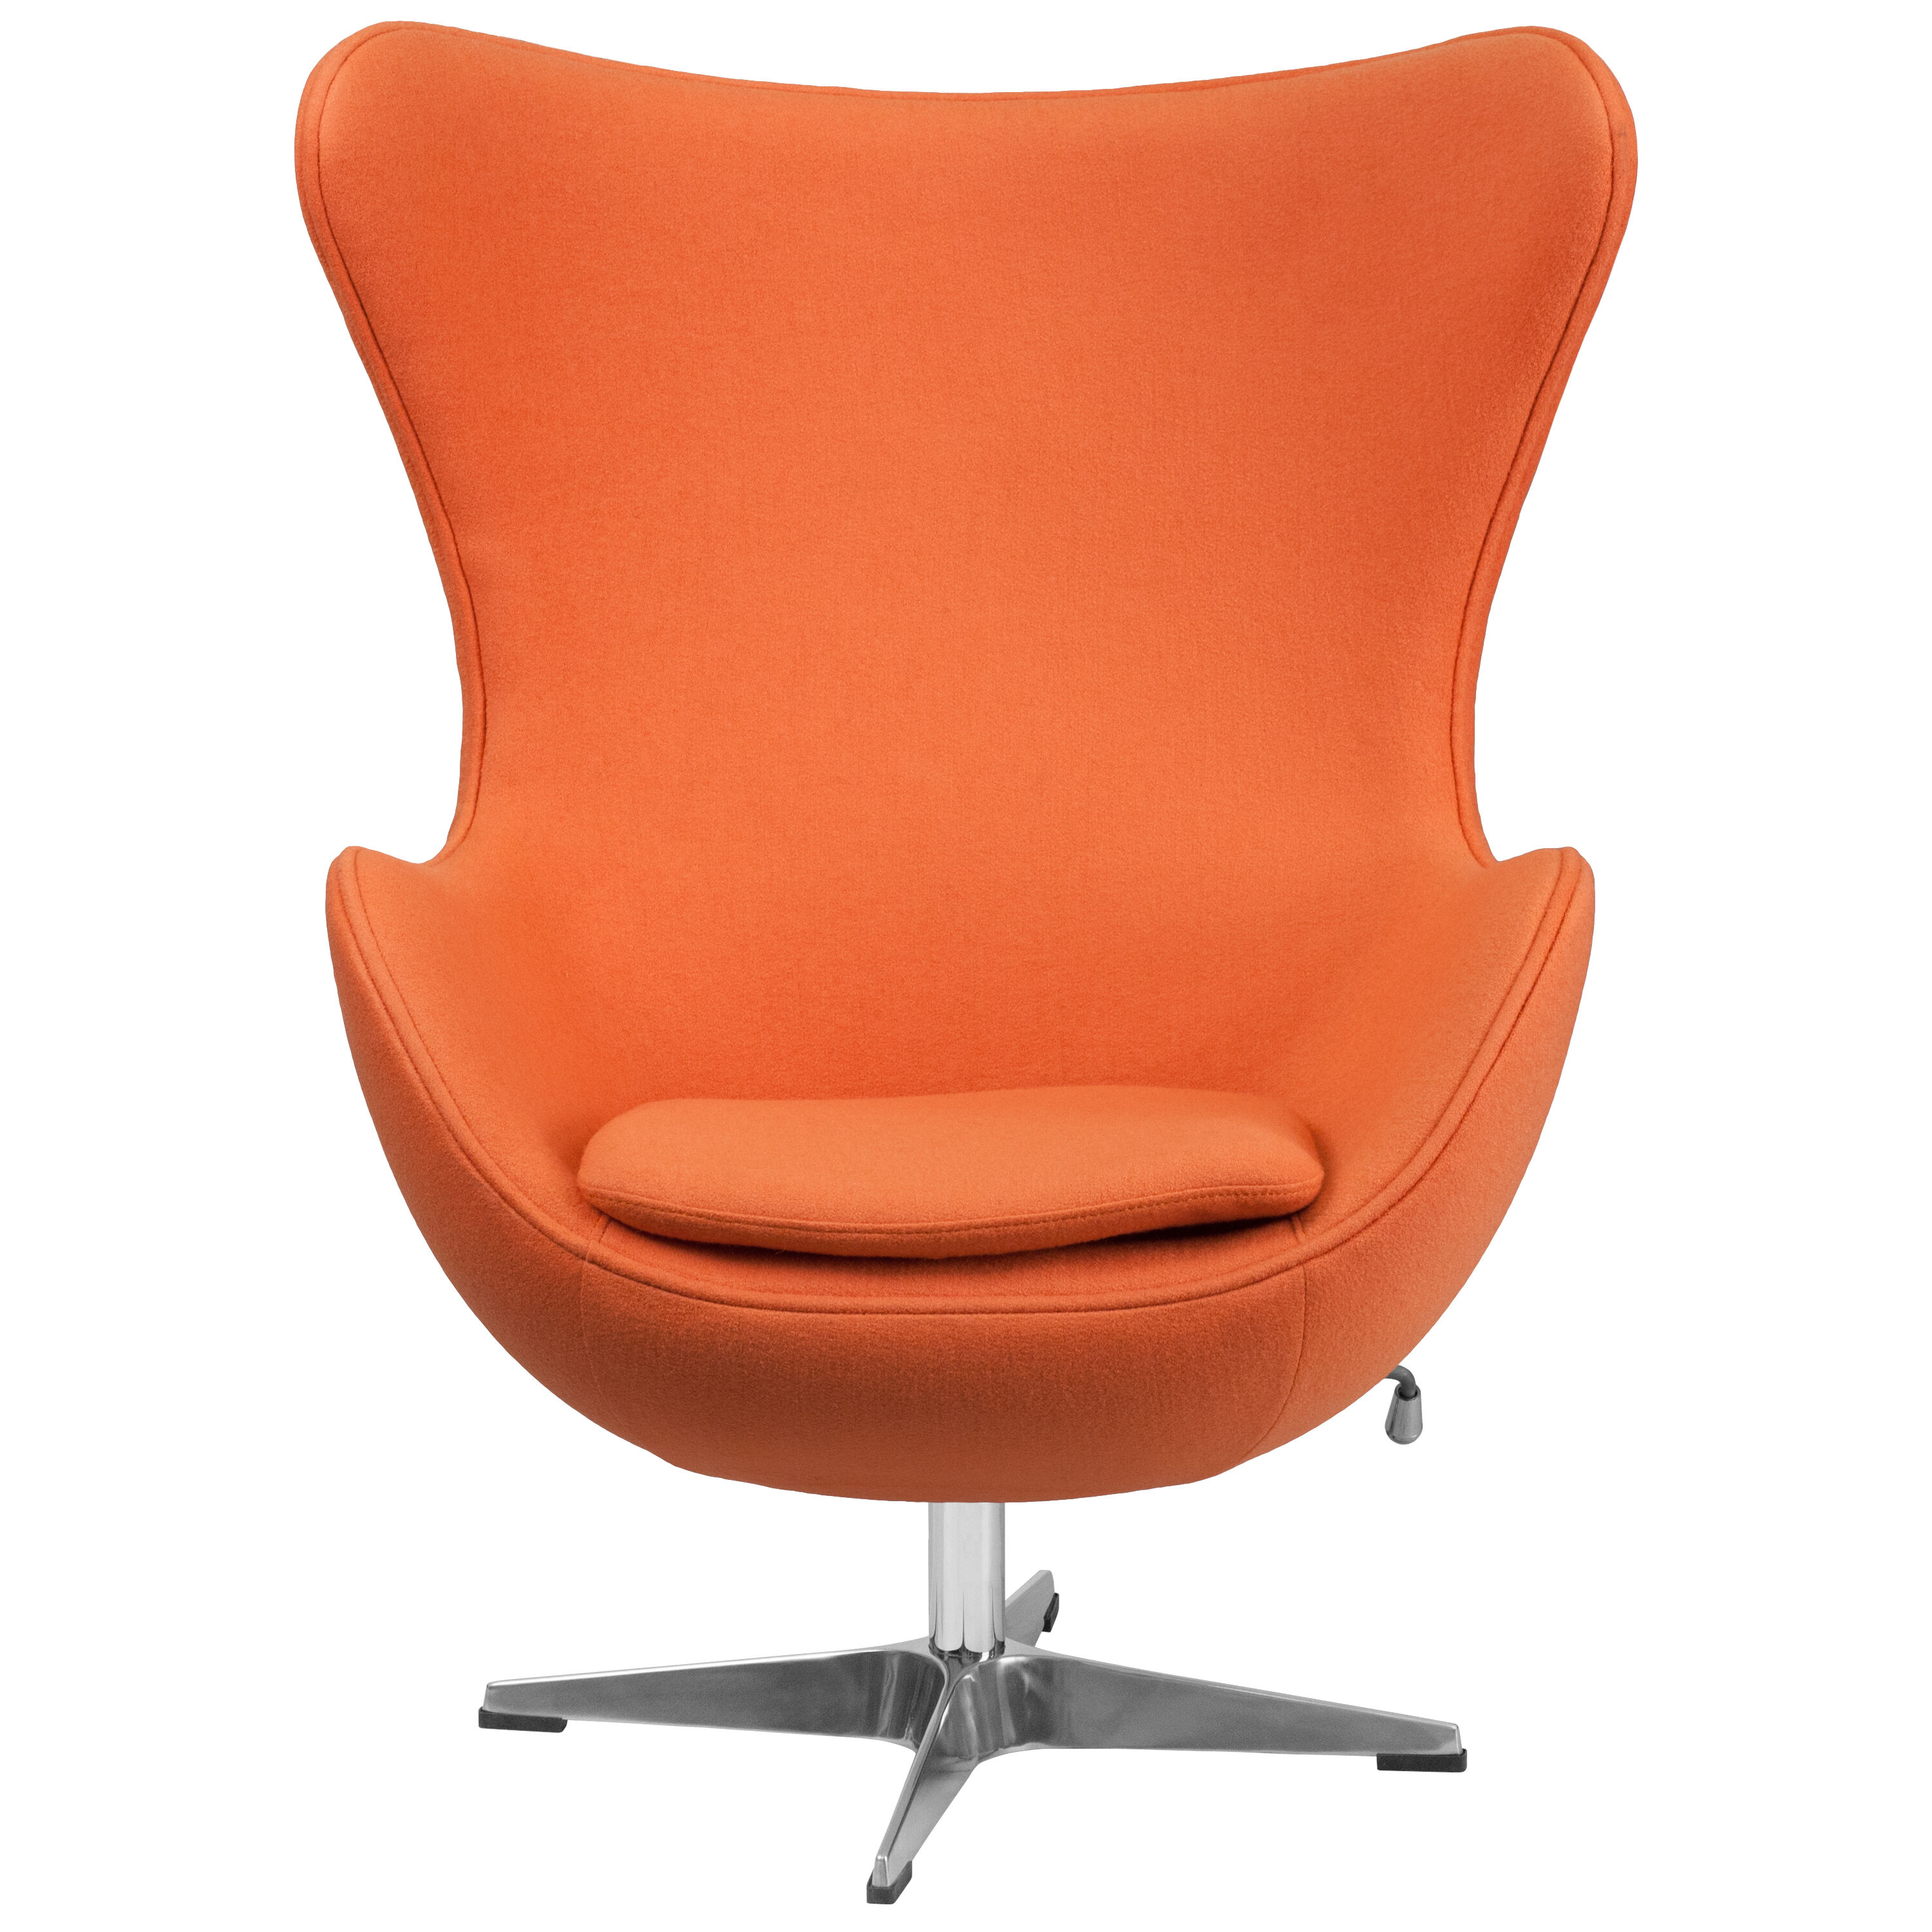 Egg Chair For Sale Orange Wool Fabric Egg Chair Zb 17 Gg Churchchairs4less